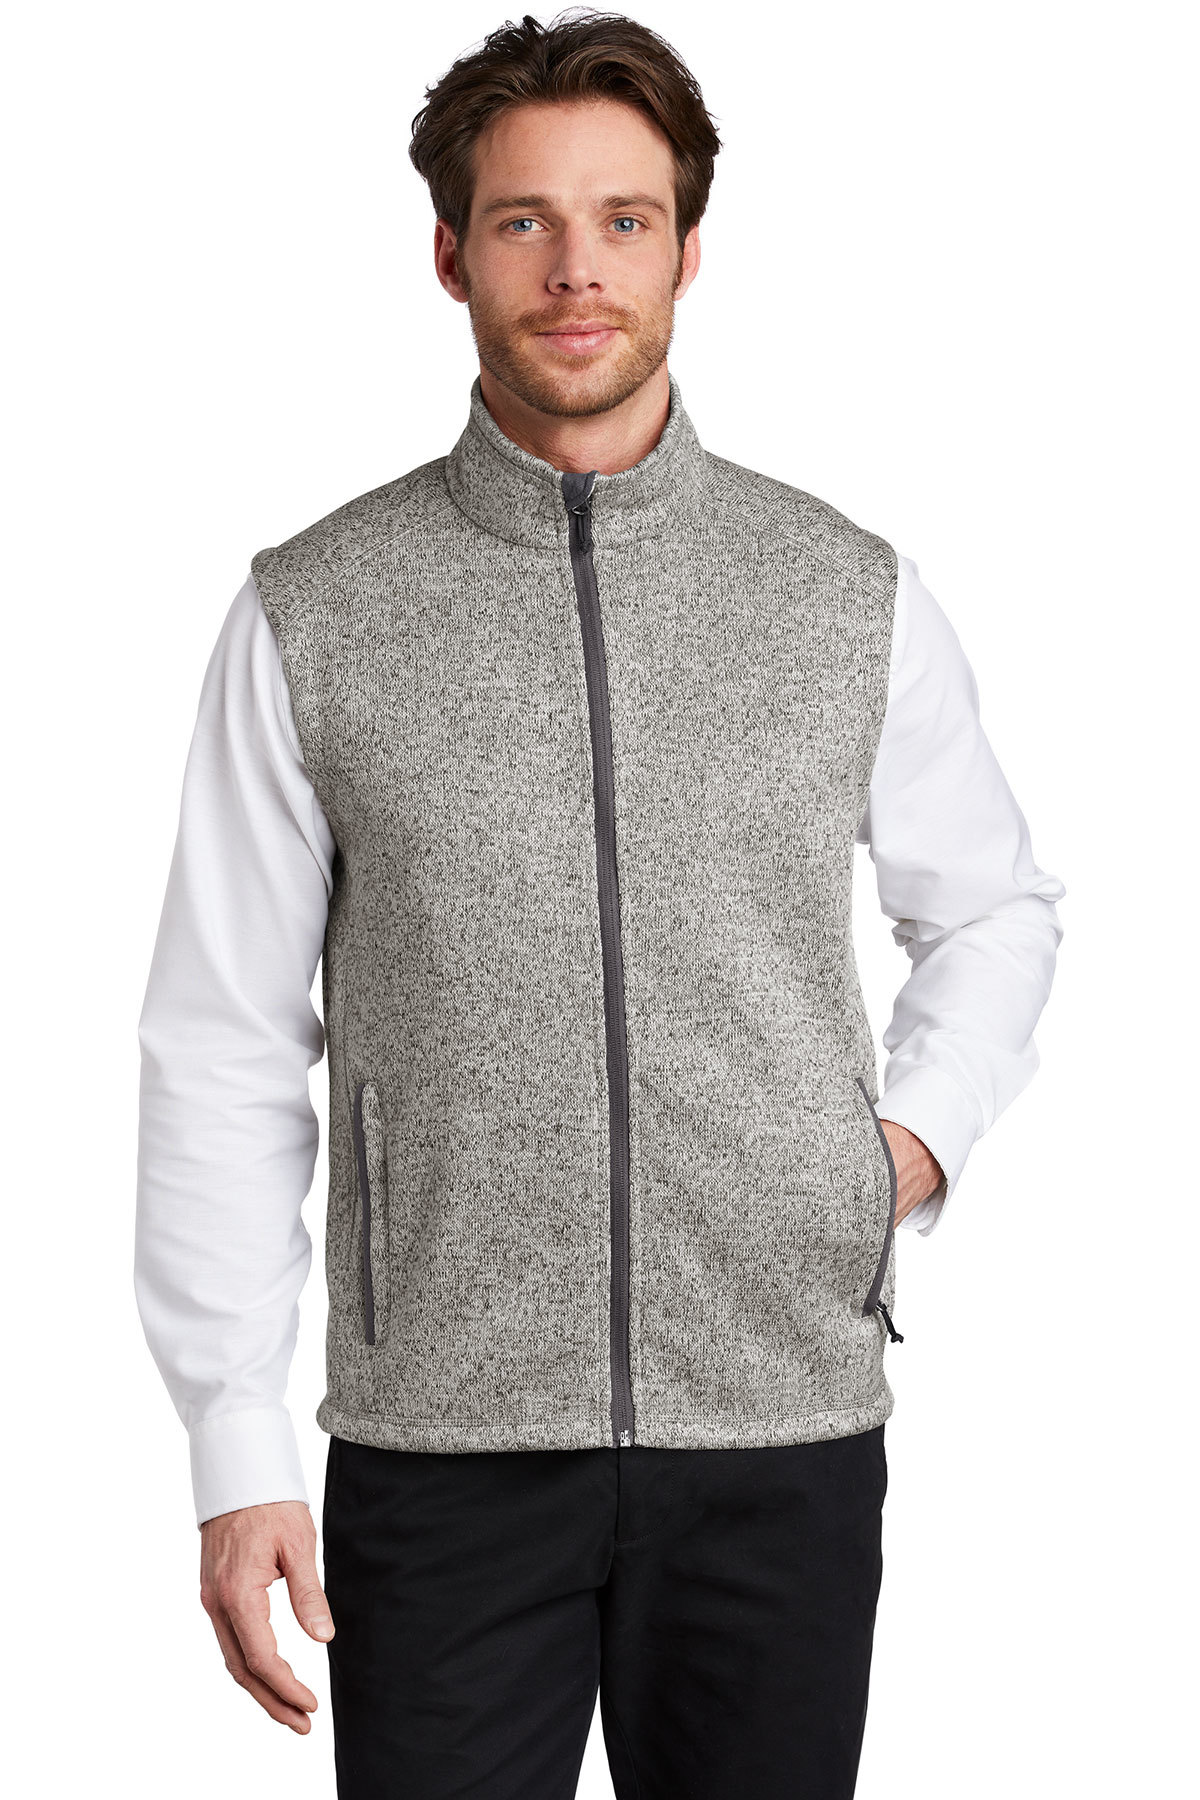 Port Authority F236 - Sweater Fleece Vest